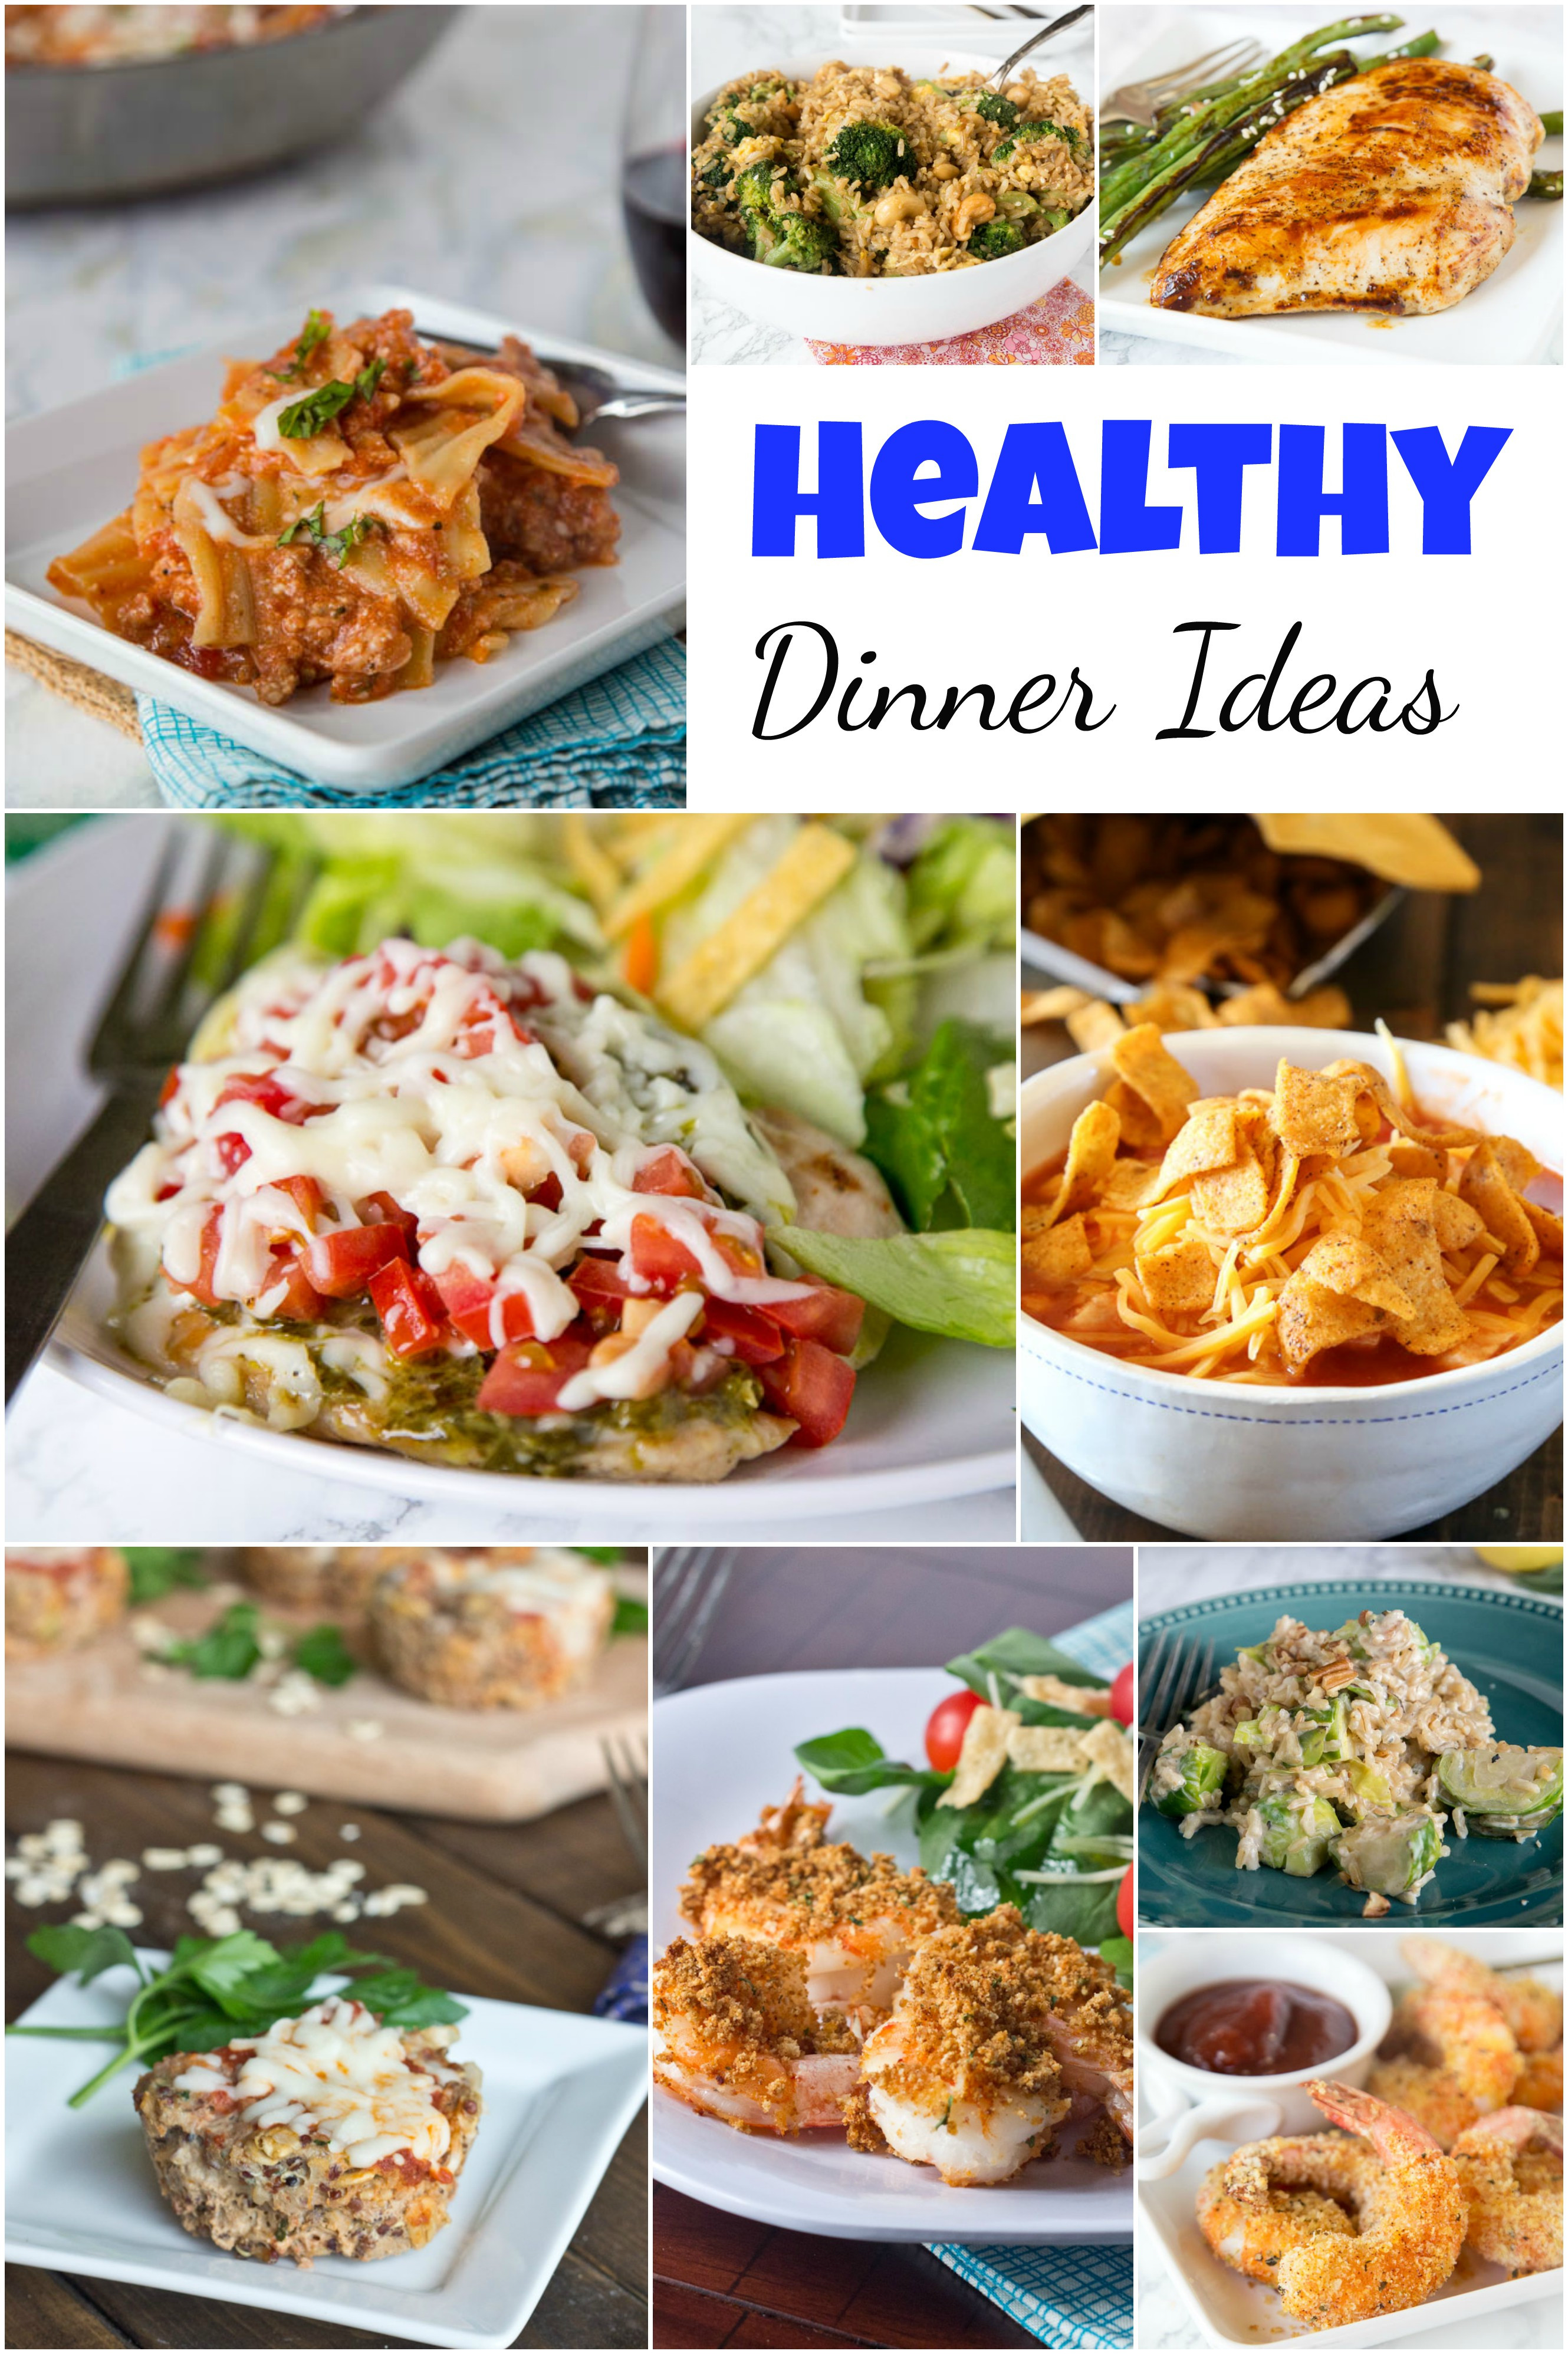 Healthy Dinners Ideas  Healthy Dinner Ideas Dinners Dishes and Desserts